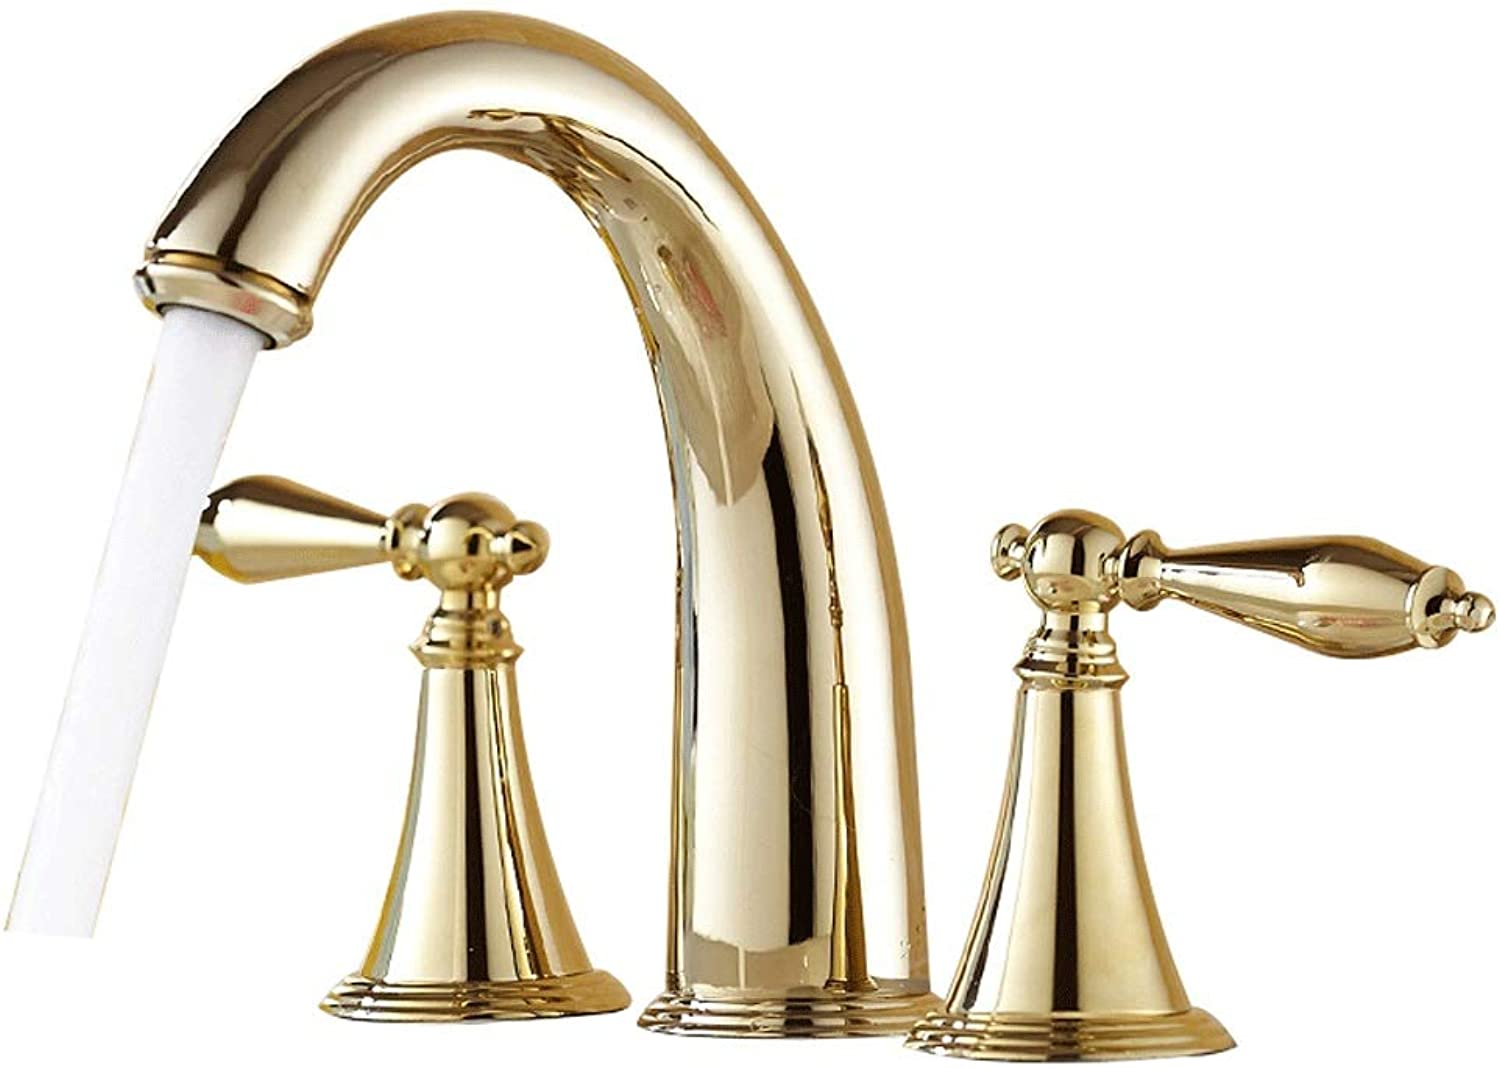 Bathroom Basin Tap Split-type Faucet Copper Double Three Hot And Cold Bathroom Wash Basin Mixing Valve Retro Hole European Diameter 30MM To 35MM Can Be Installed